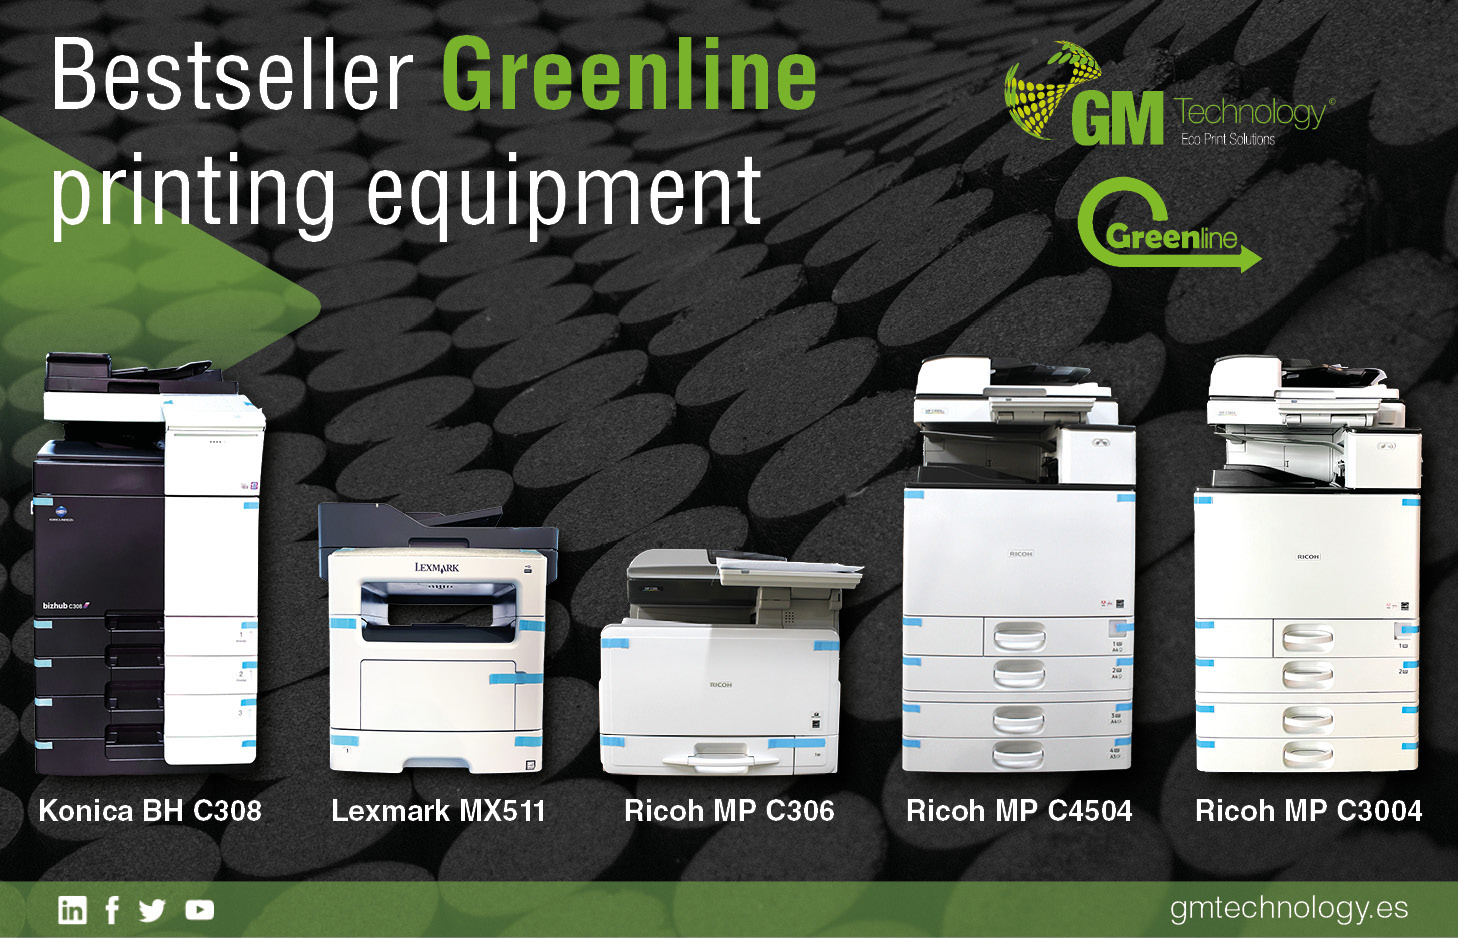 The 5 best-selling GreenLine remanufactured equipment